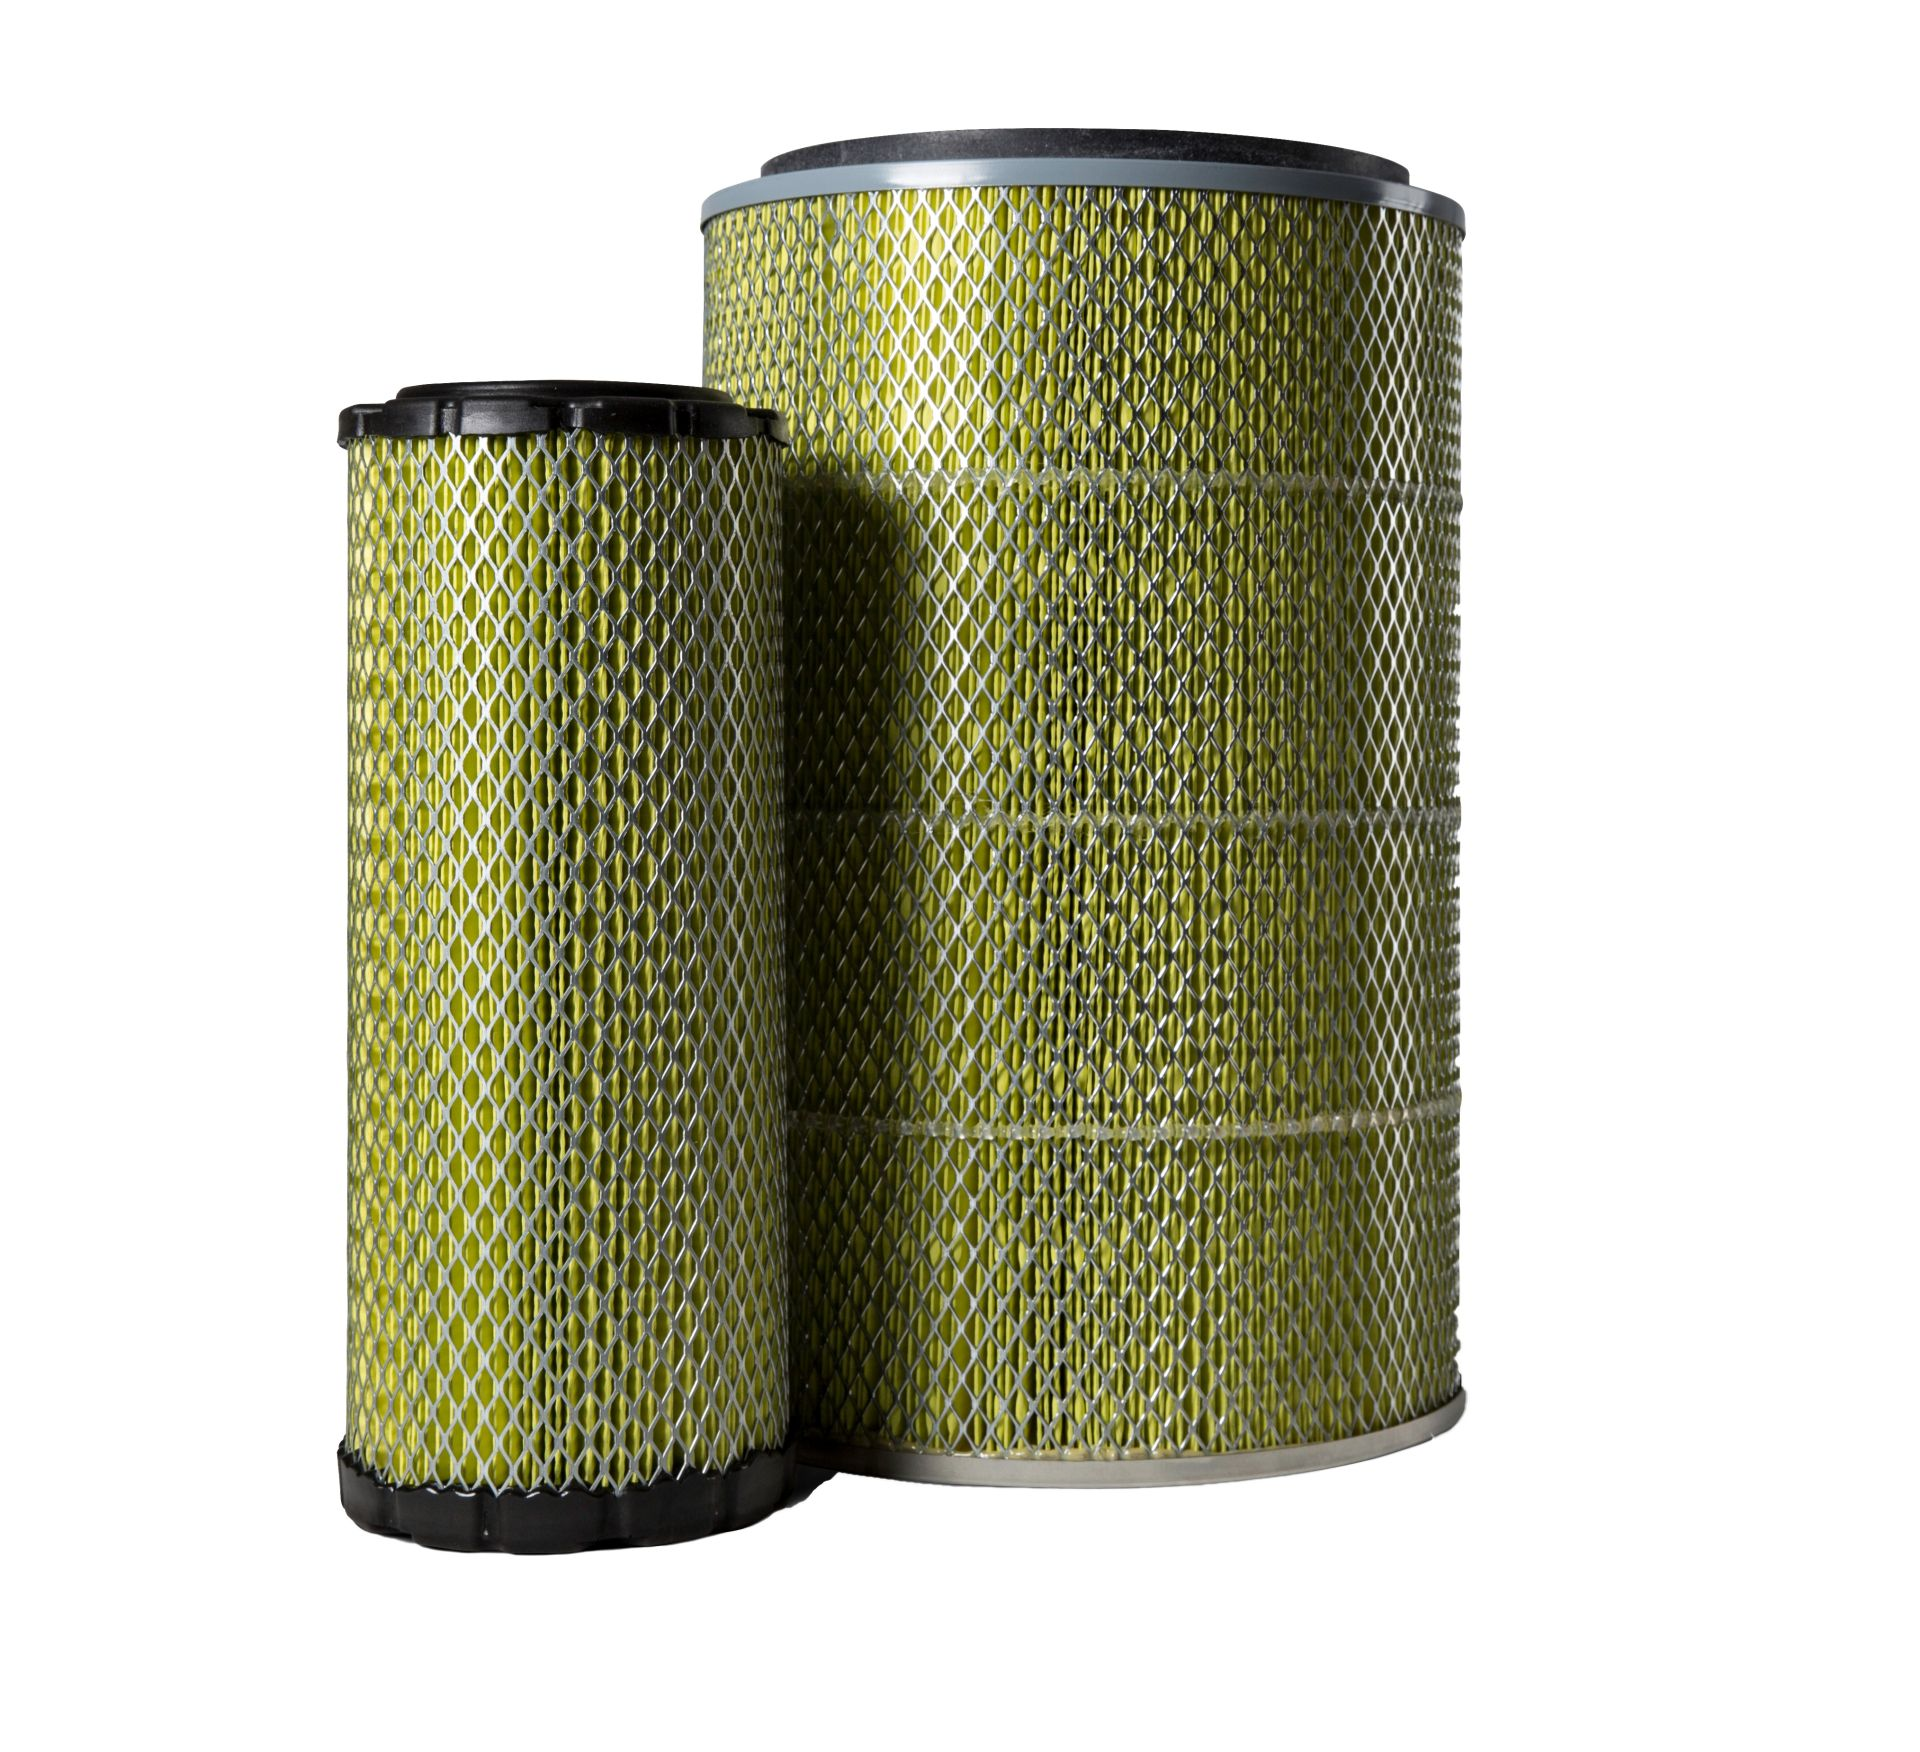 New Wix HD Filters Offer Higher Efficiency